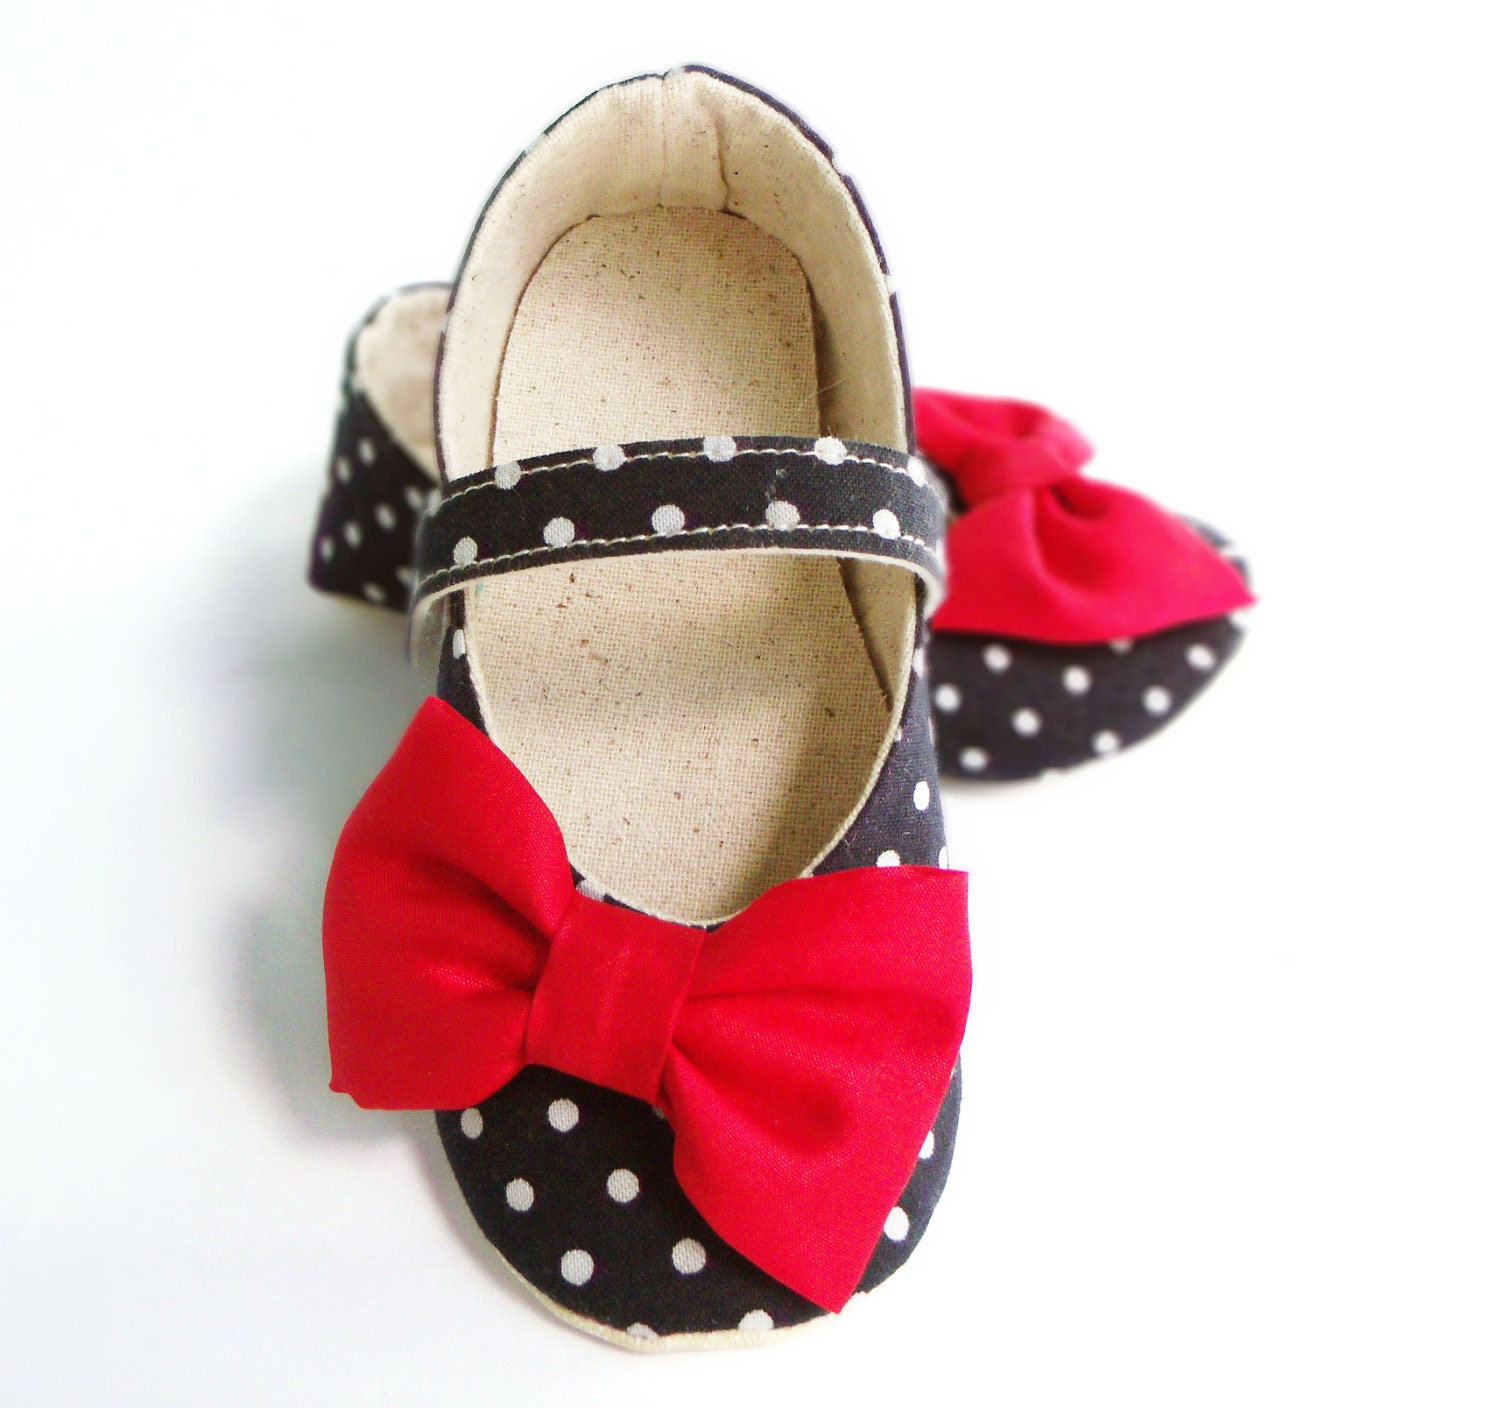 Baby Shoes, Baby Christmas Outfit, Baby Girl, Navy Blue, White, Polka Dots, Christmas Gift, Red Bow, Booties, Little Serah - littleserah